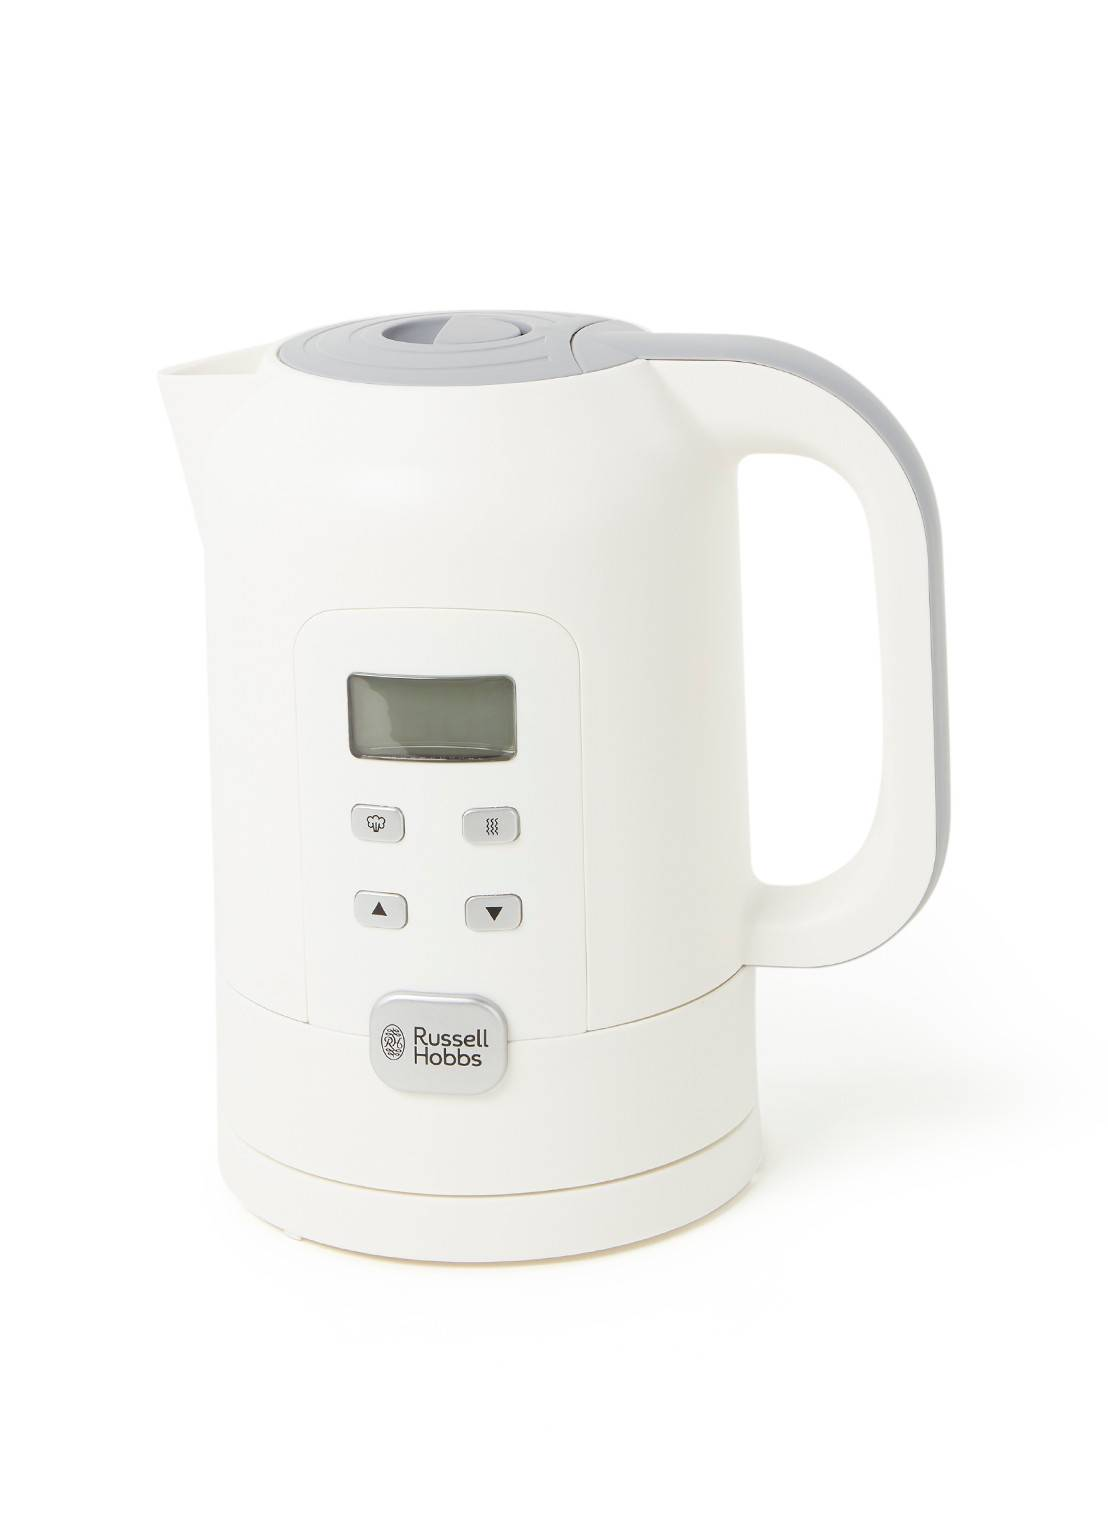 russell hobbs Bouilloire Precision Control 1,7 litre 21150-70 - Blanc